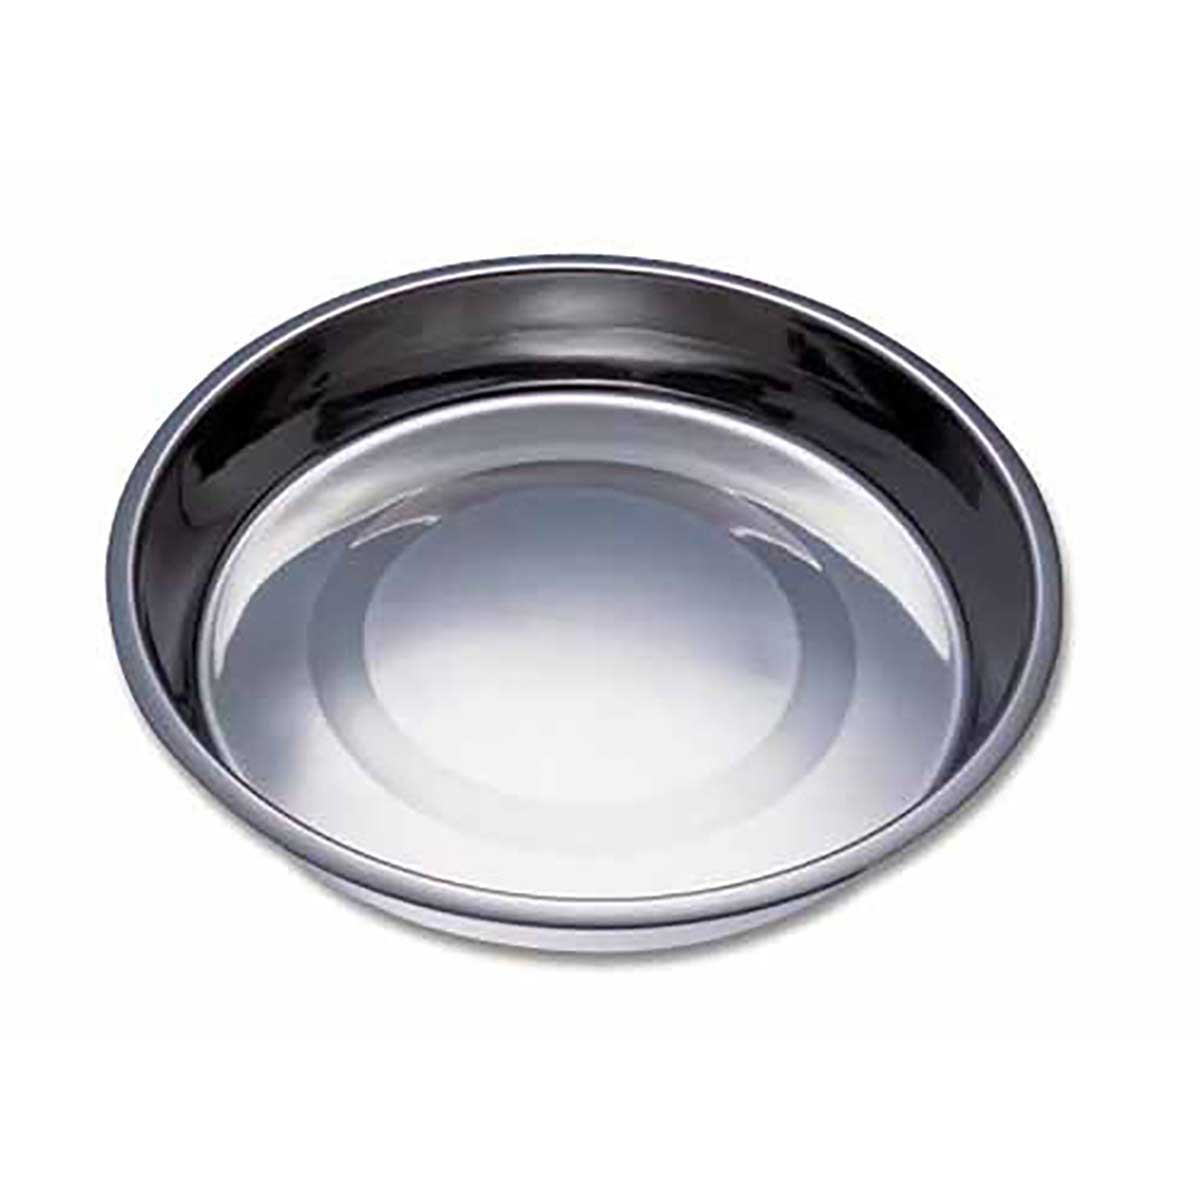 Indipets Stainless Steel Puppy Pans 10 inch